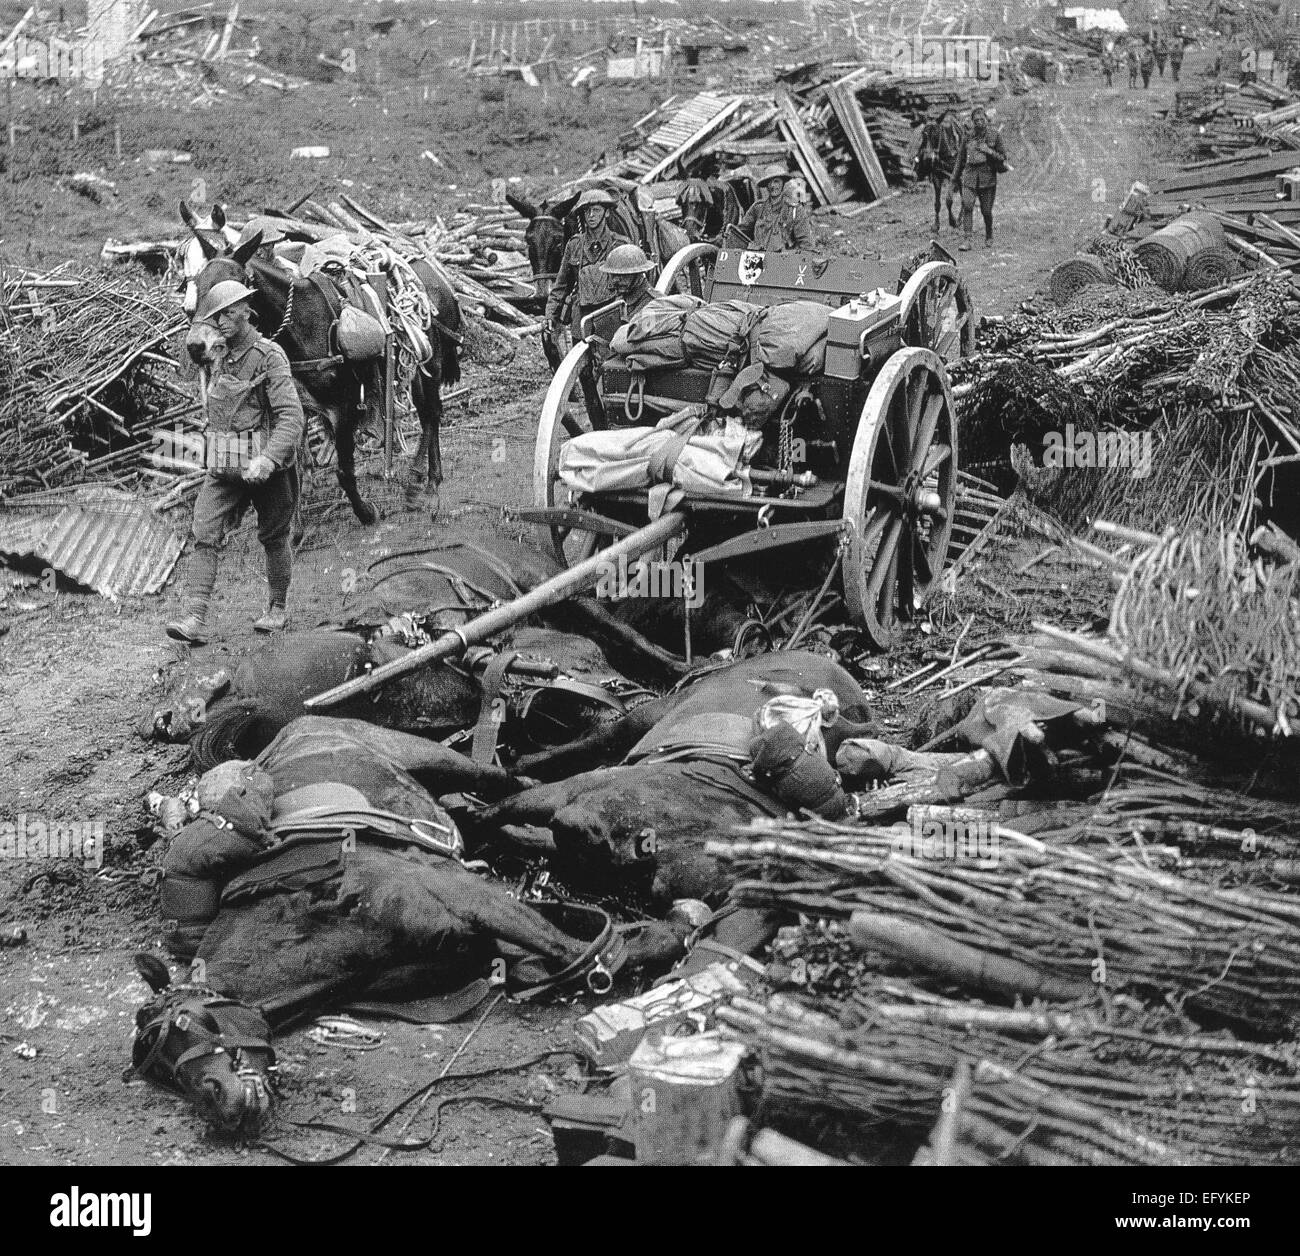 FIRST WORLD WAR Dead horses in unidentified location in France. - Stock Image